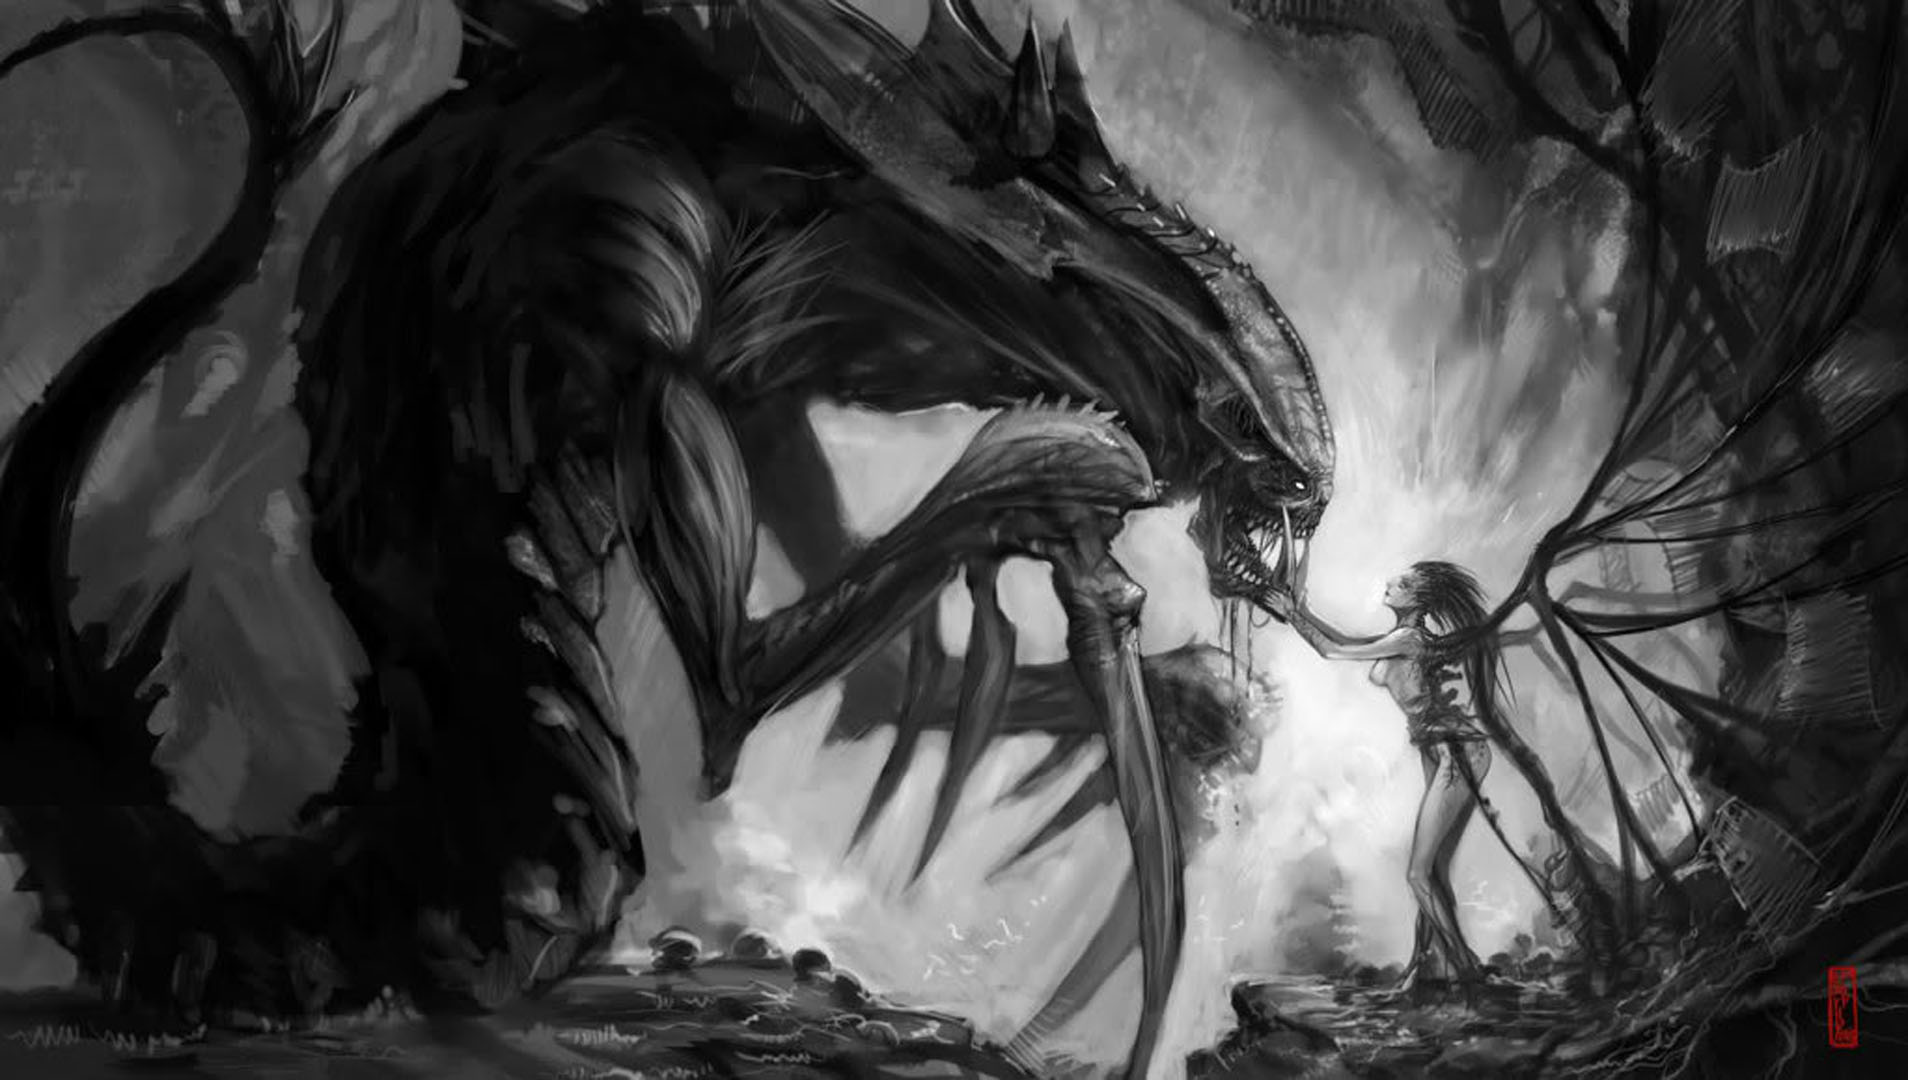 Queen Of Blades And Hydralisk   Action Rpg Games Wallpaper Image 1908x1080